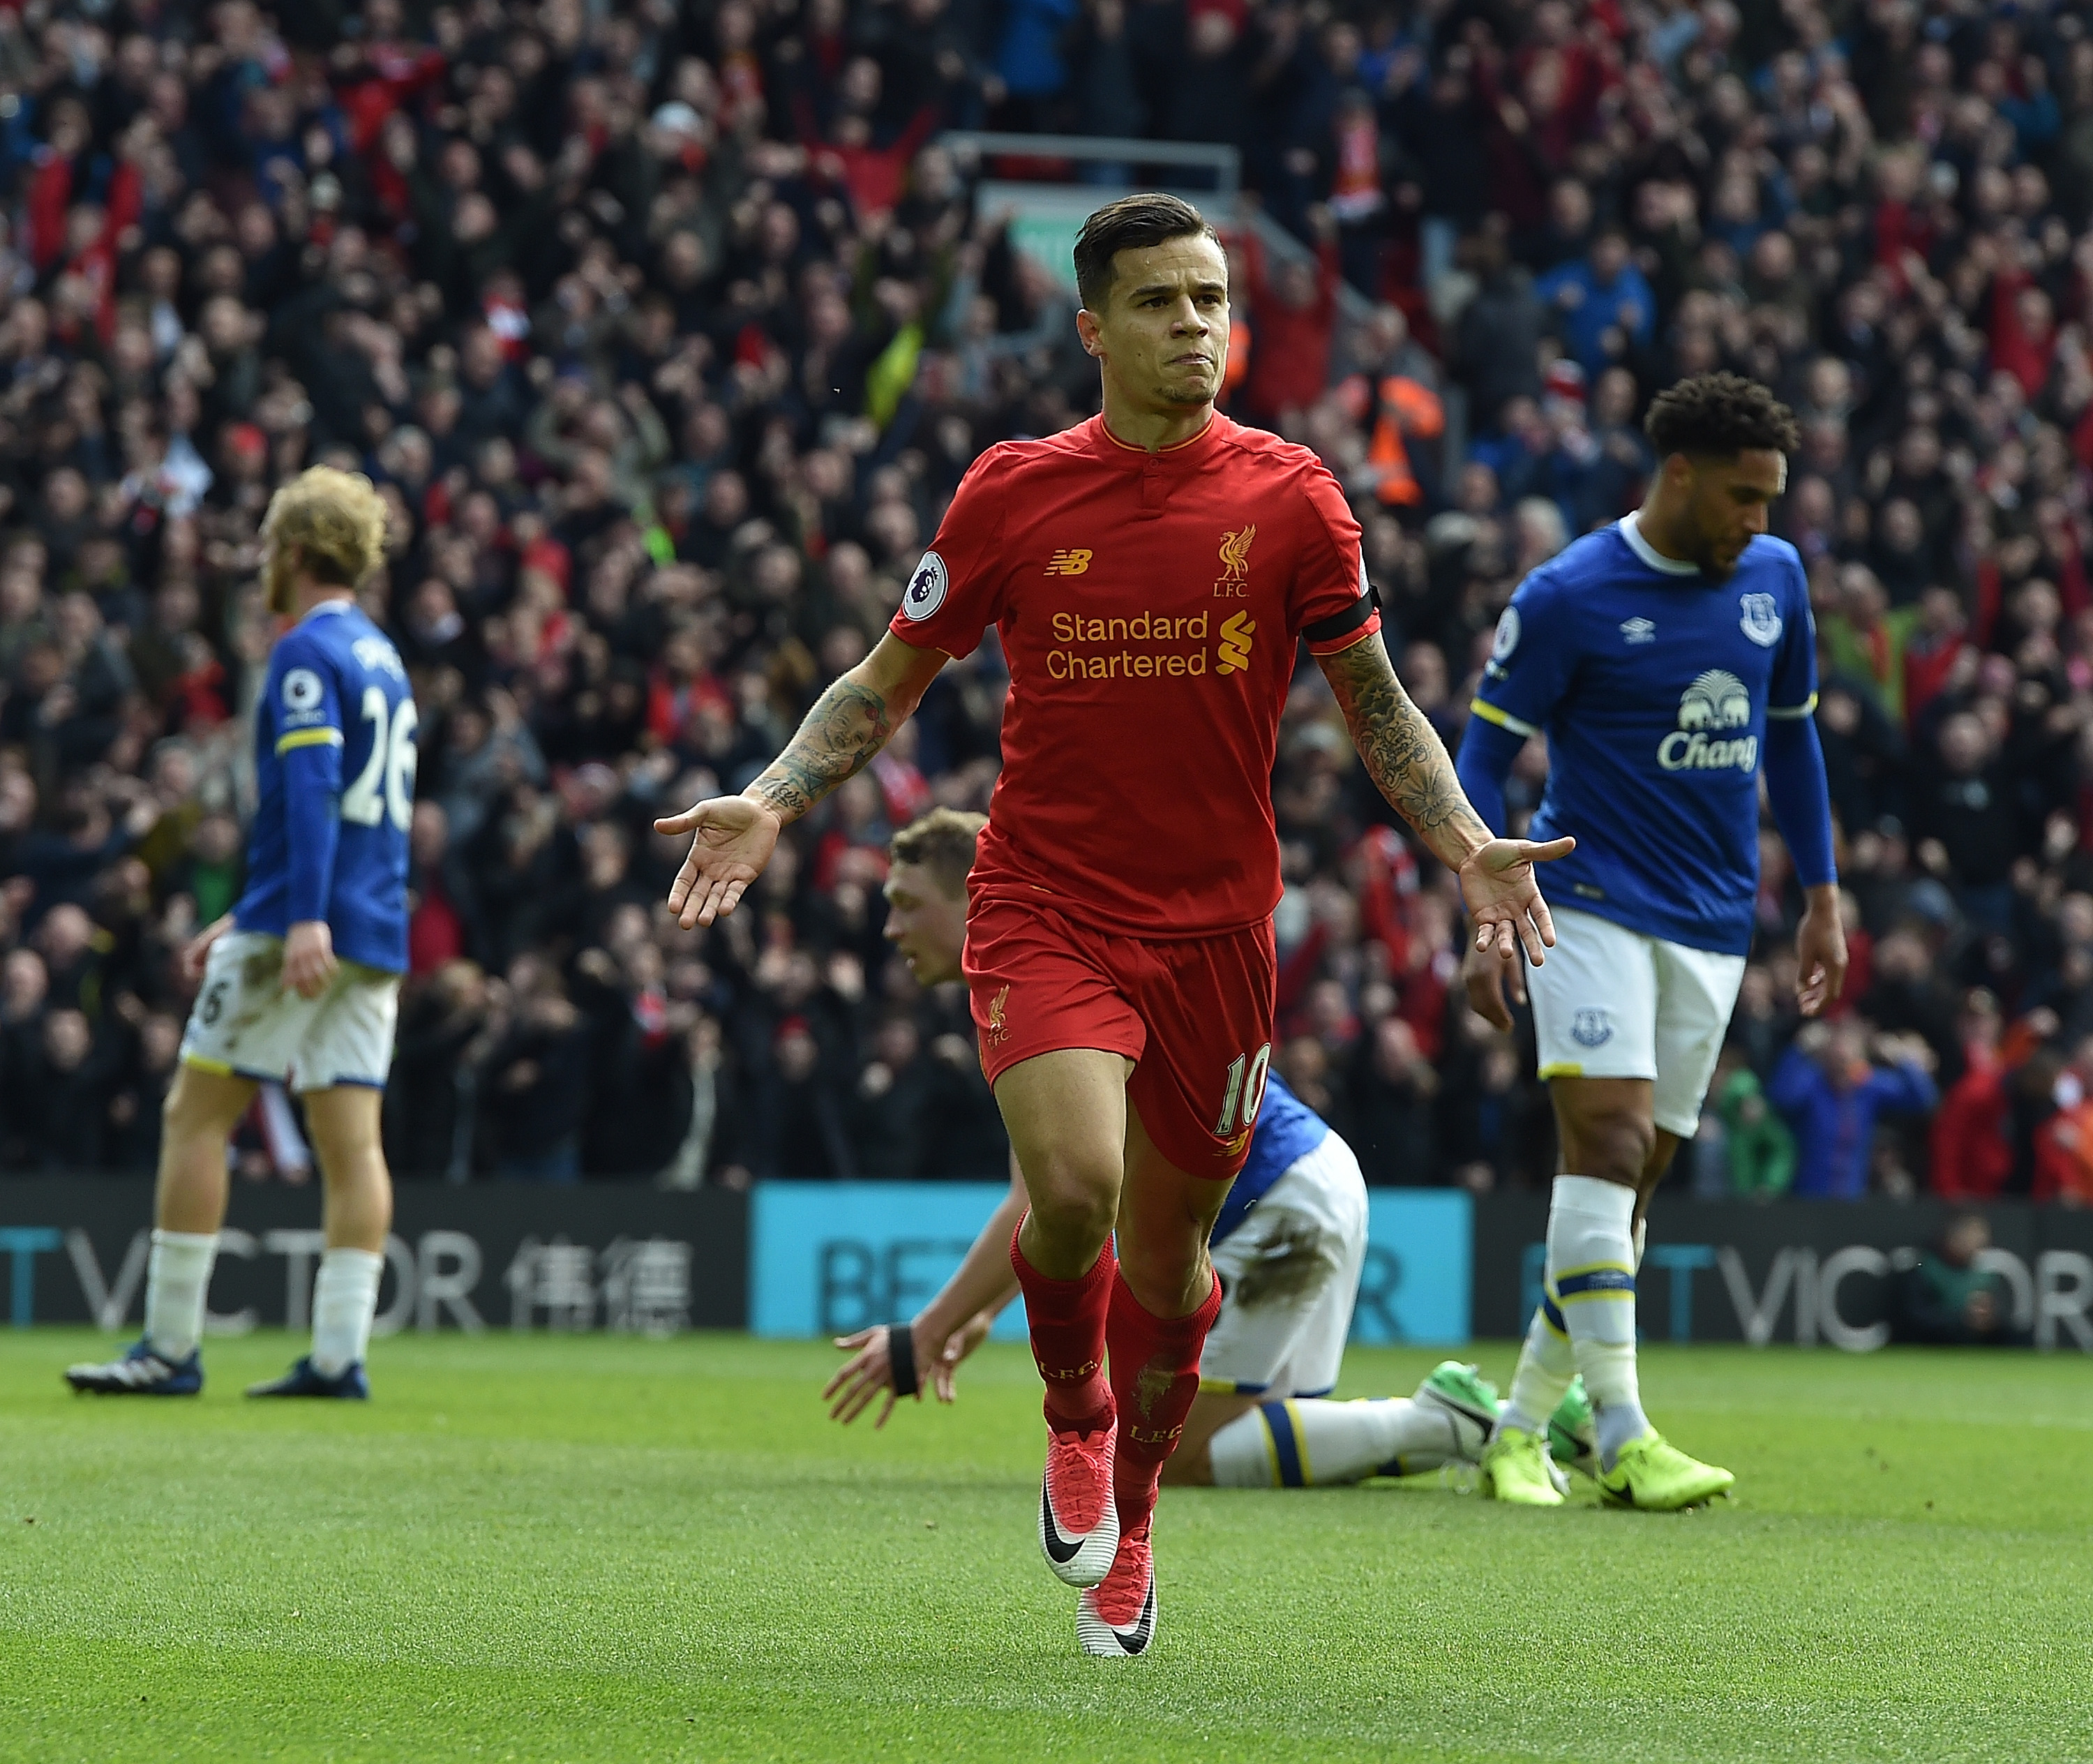 Liverpool 3-1 Everton player ratings: Philippe Coutinho and Sadio Mane superb in Merseyside Derby win